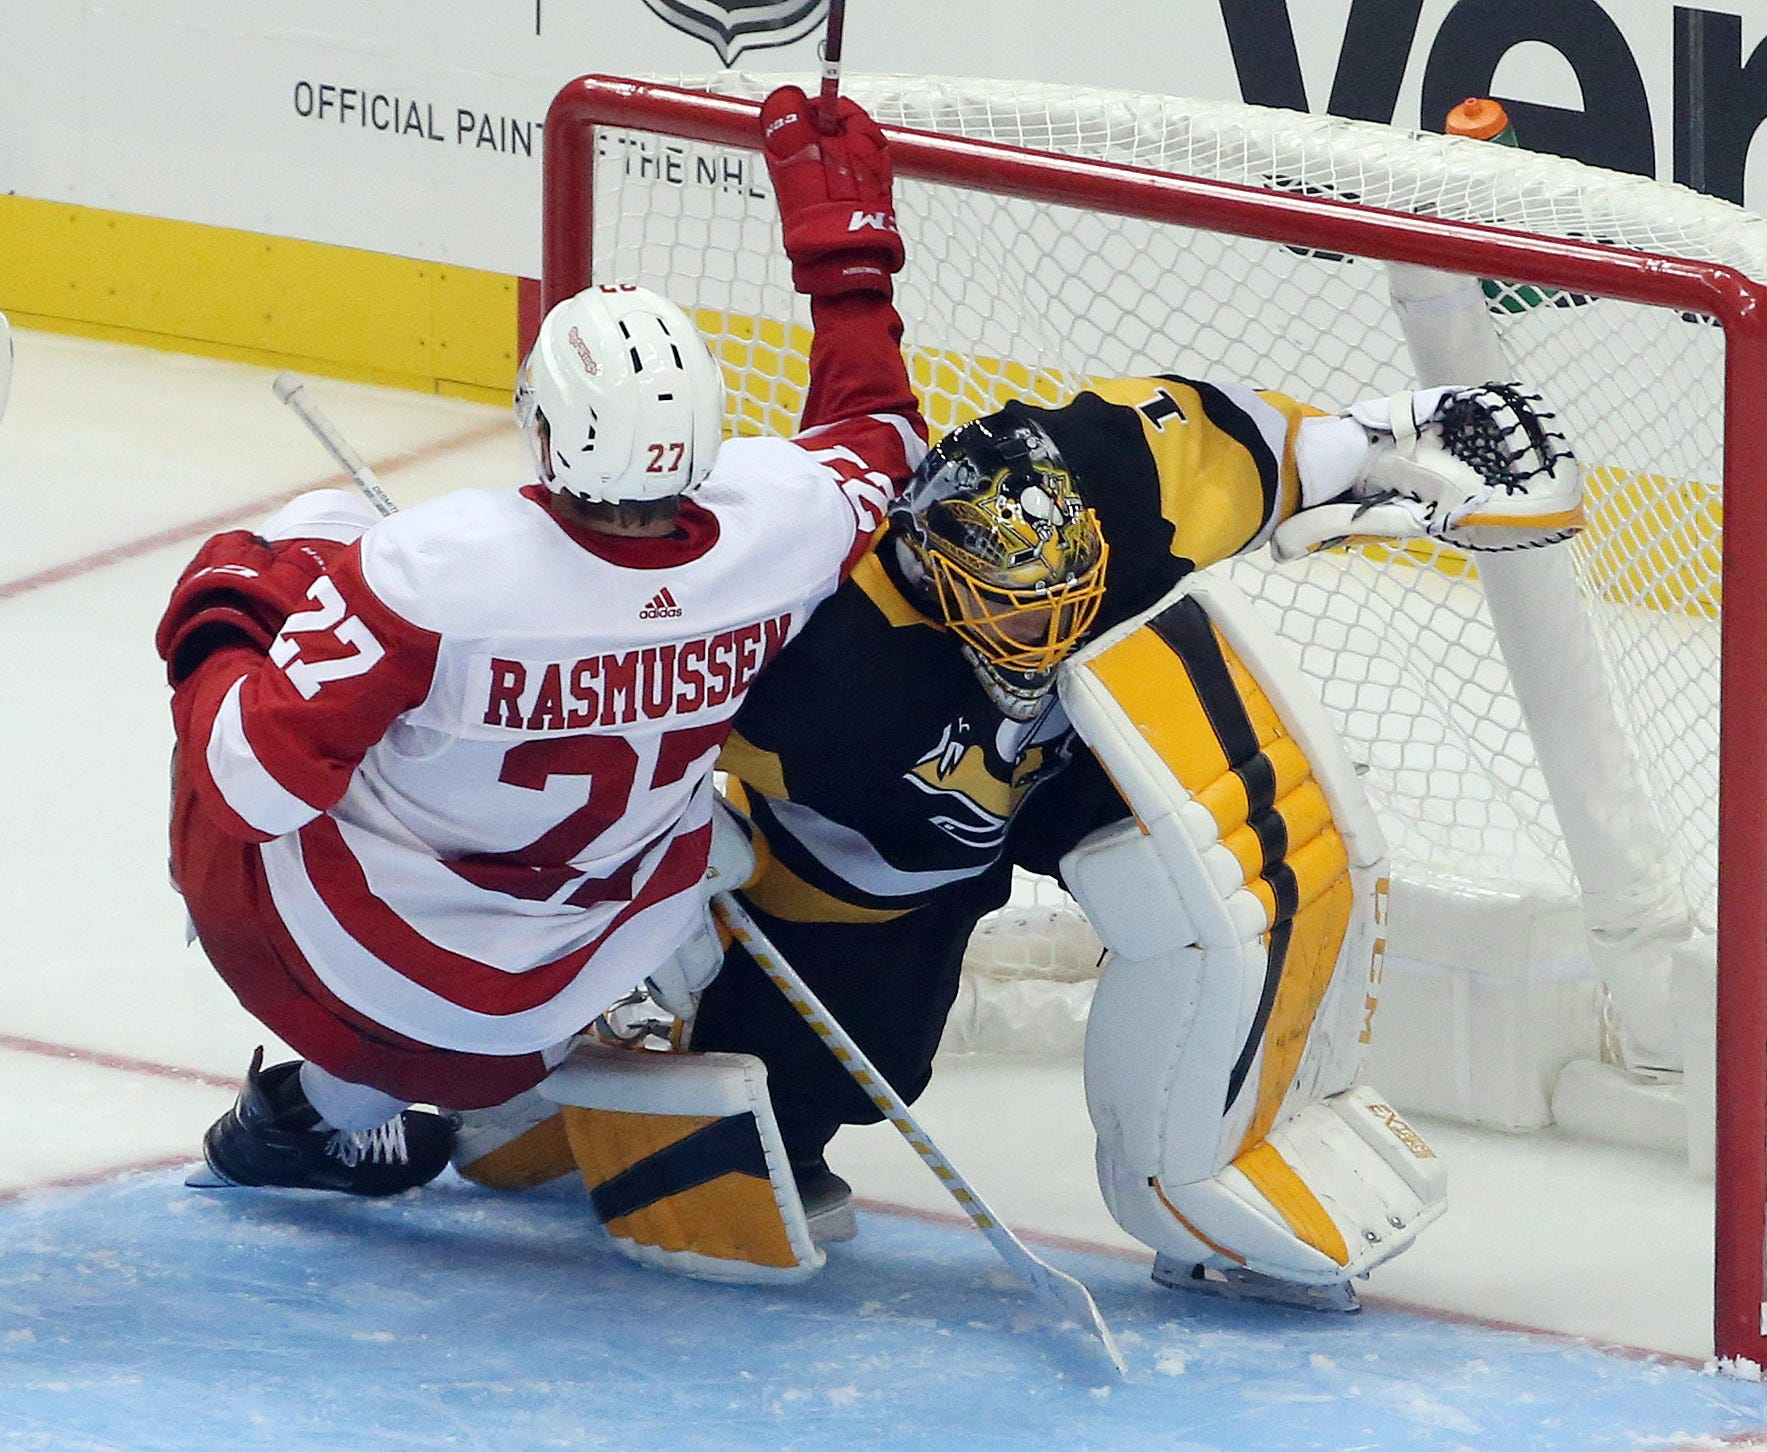 Red Wings forward Michael Rasmussen gets tangled up with Penguins goaltender Casey DeSmith during the second period of the Wings' 3-2 preseason win over the Penguins on Sunday, Sept. 23, 2018, in Pittsburgh.